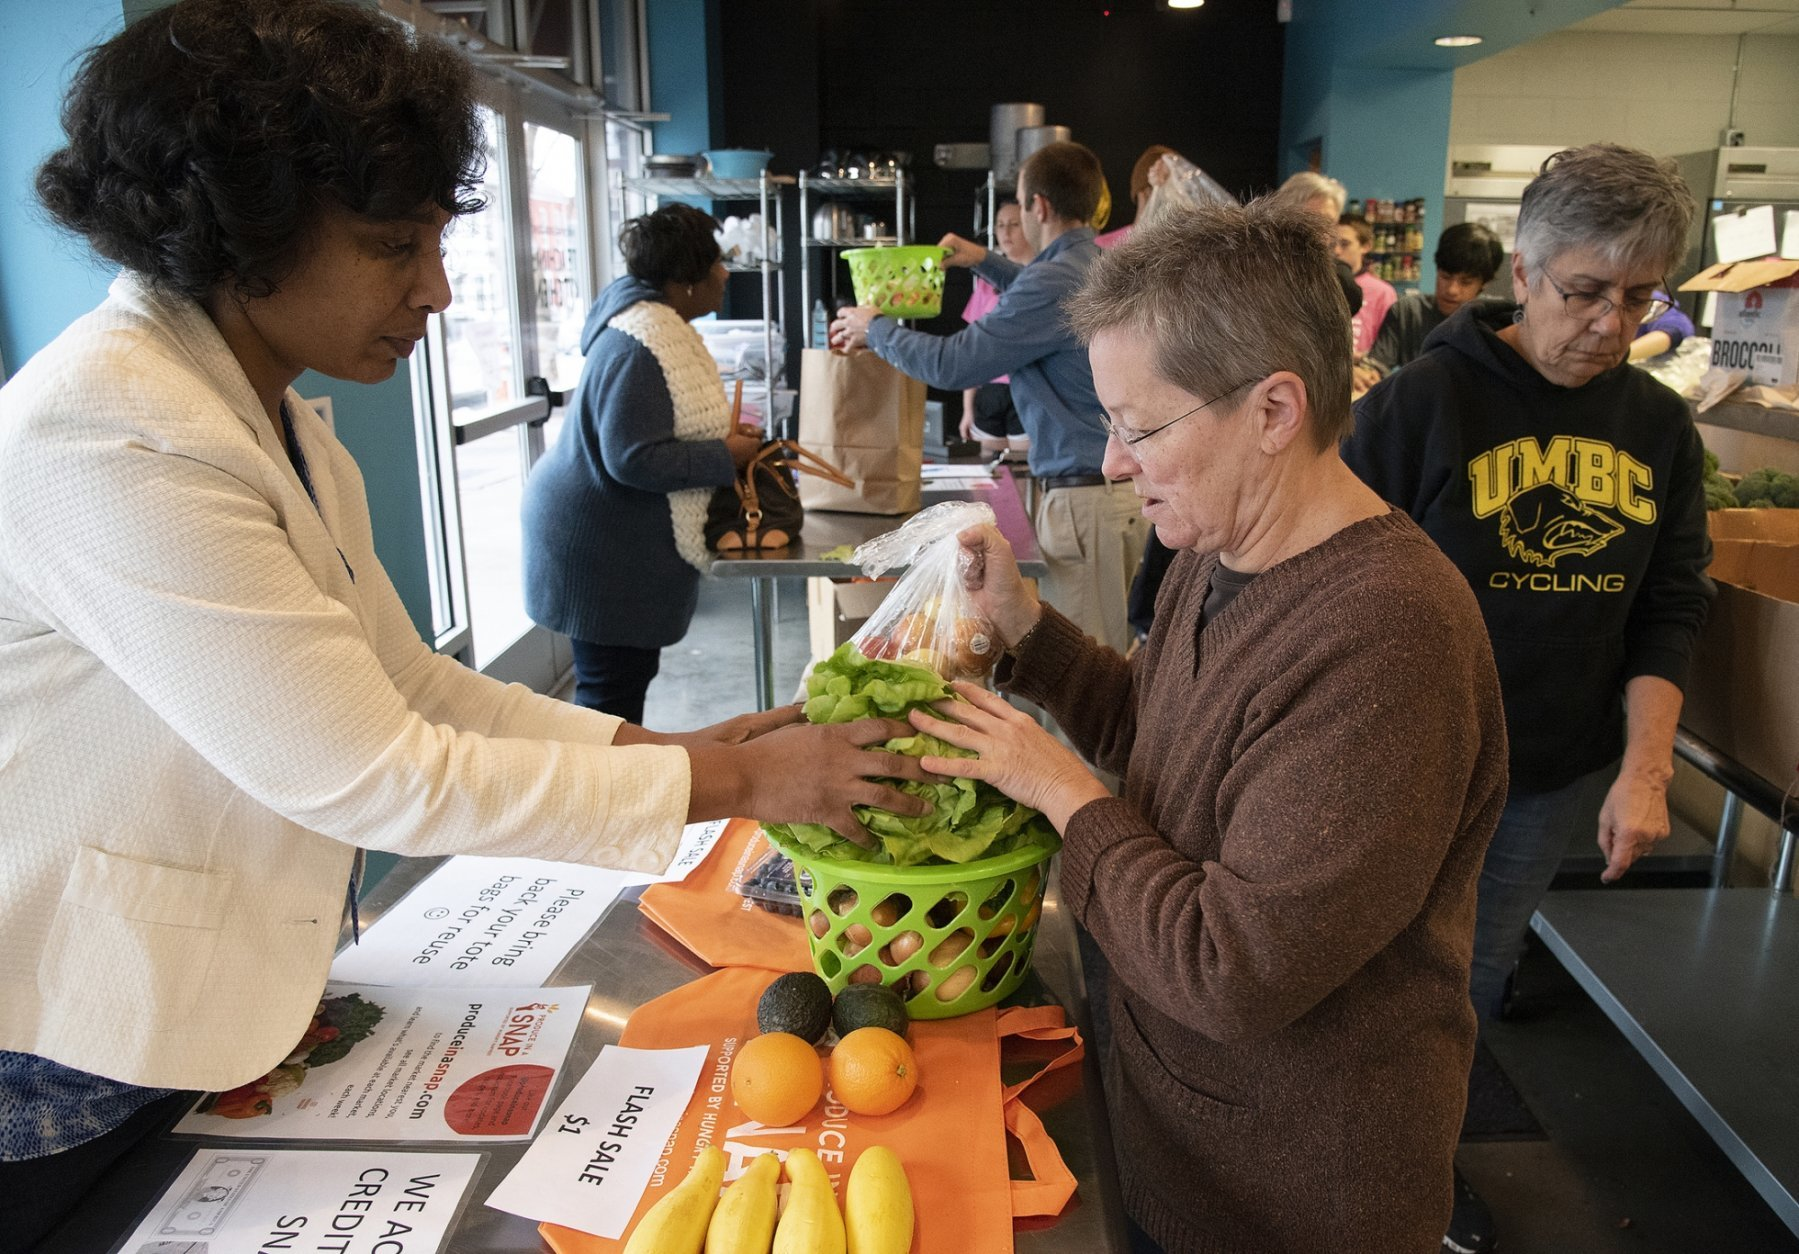 In this Wednesday, Feb. 6, 2019 photo, Shannon Coles, left, picks out vegetables and volunteer Ginny Skelley packs her basket at the Hungry Harvest reduced-cost produce market at the YMCA of Frederick County's teaching kitchen in Frederick, Md. (Dan Gross/The Frederick News-Post via AP)